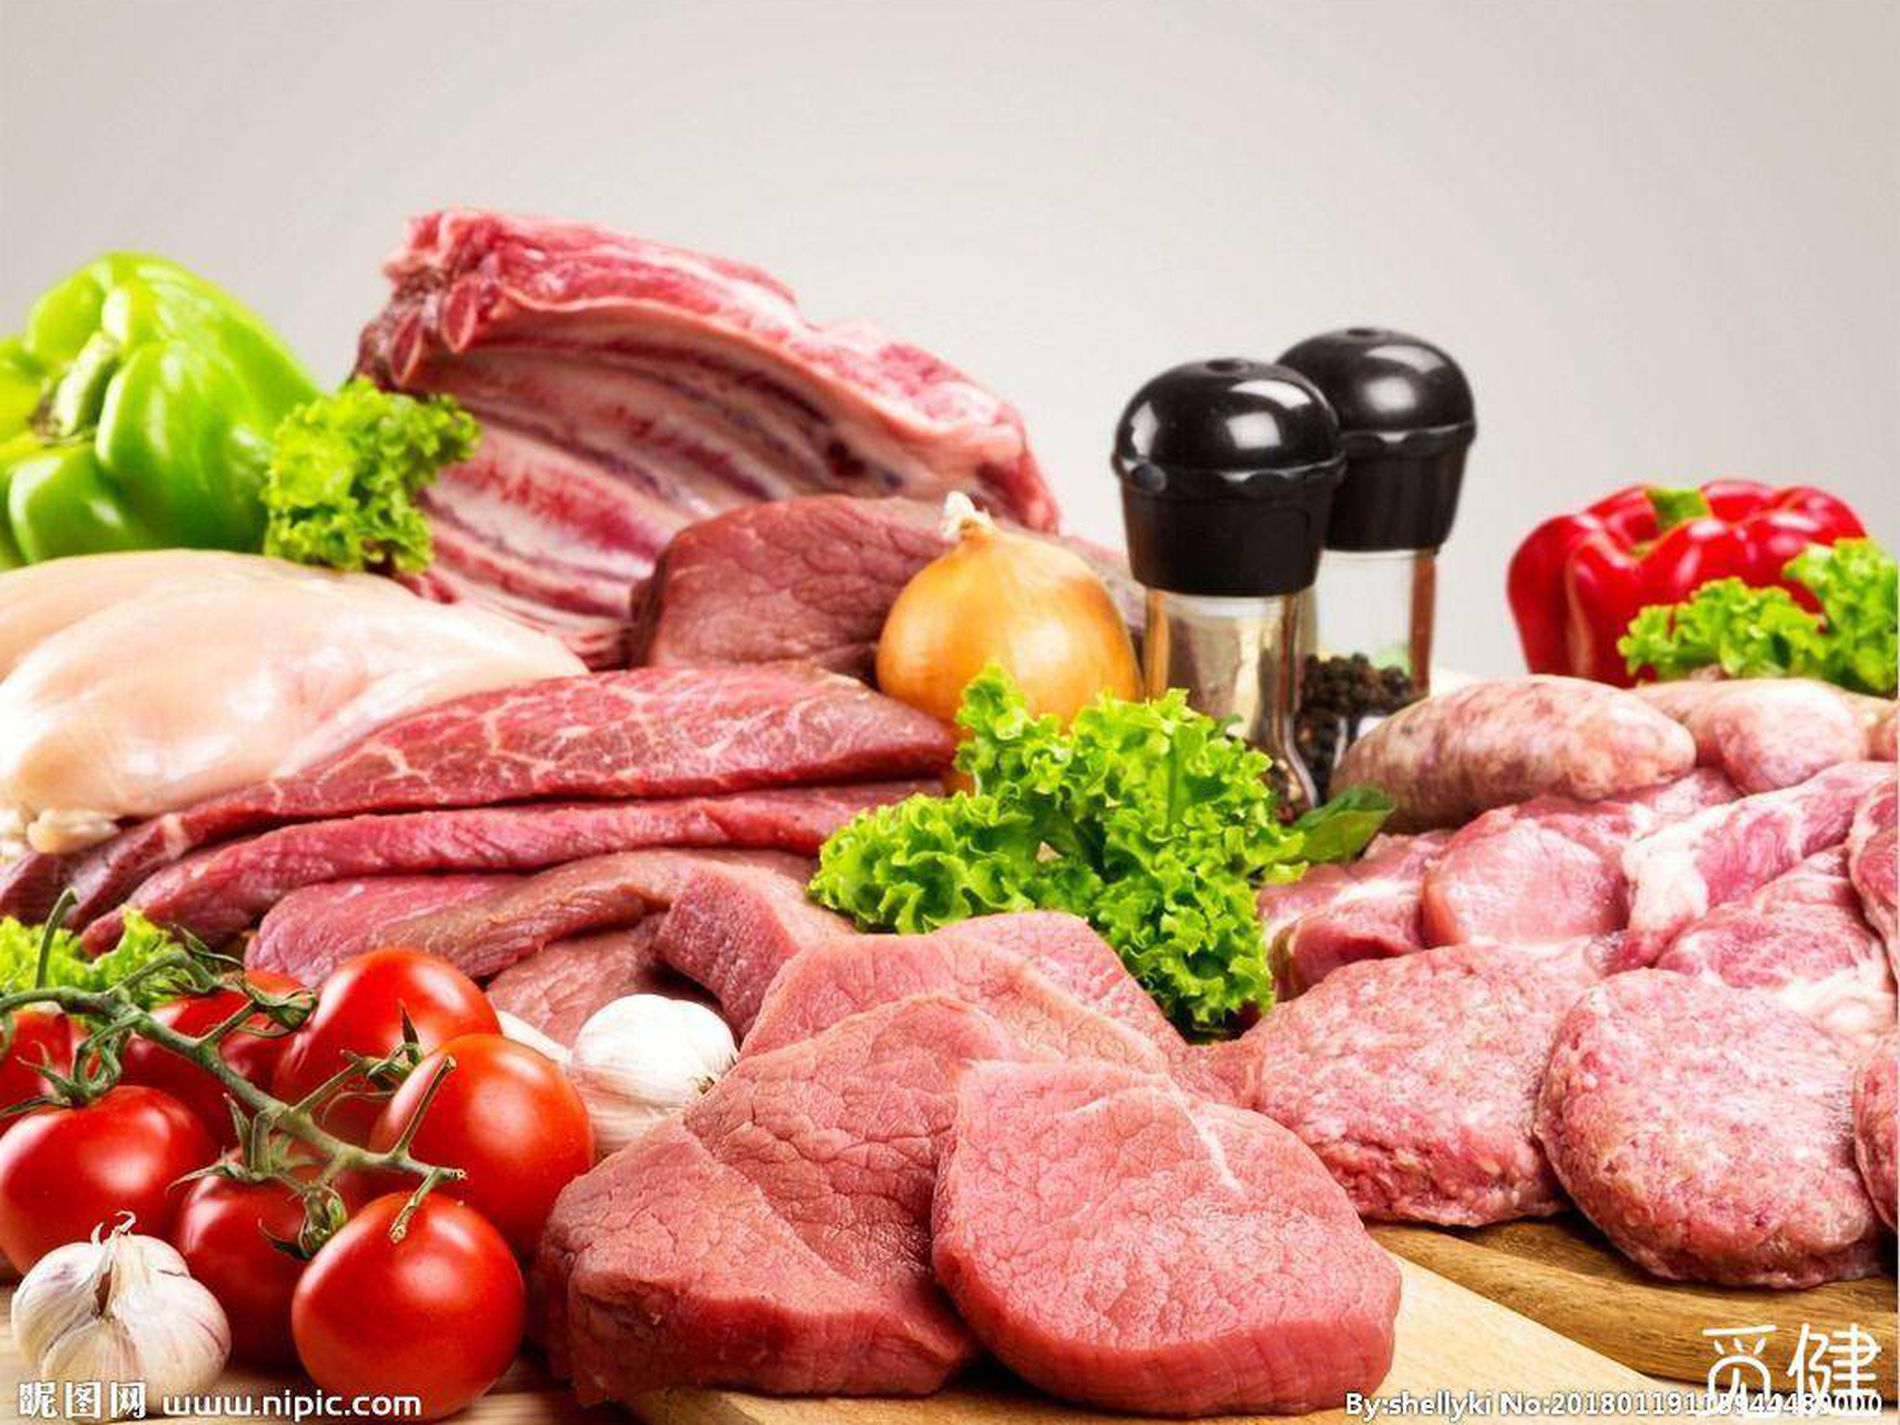 Wholesale and Retail Butcher Business For Sale with low rent